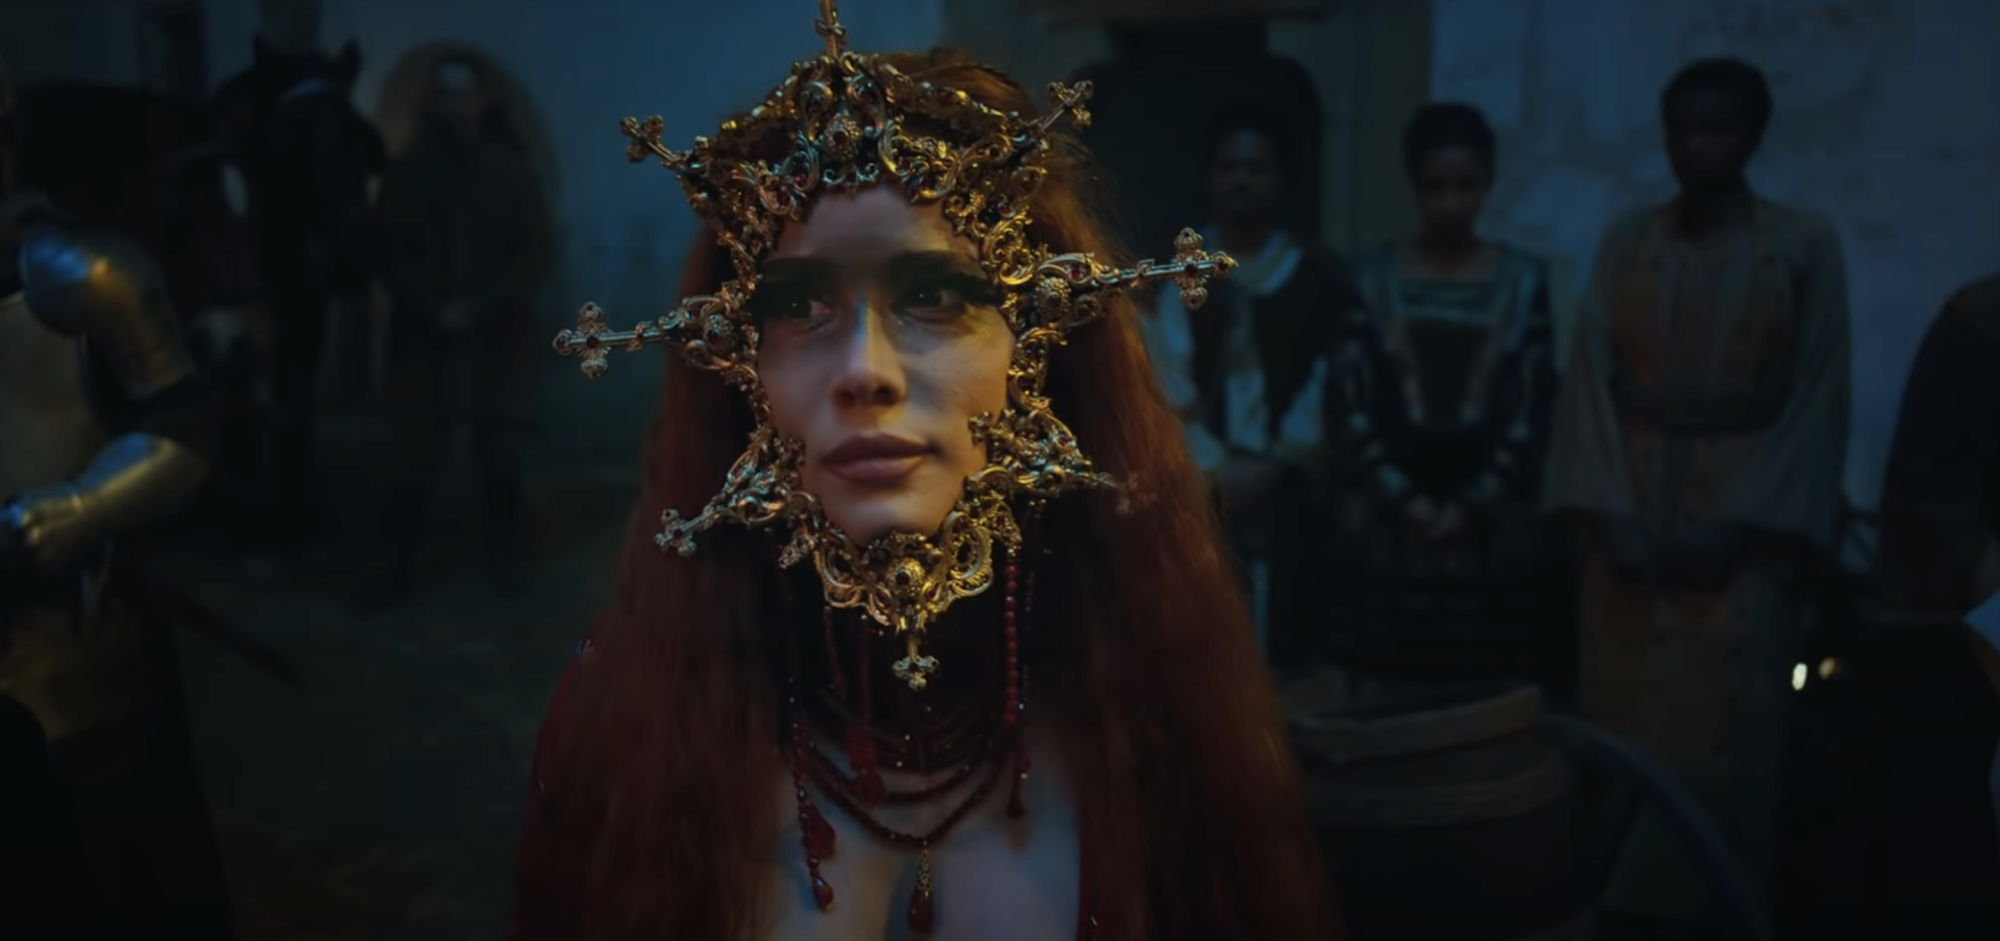 Halsey goes from beautiful to bloody in second trailer for 'If I Can't Have Love, I Want Power' film